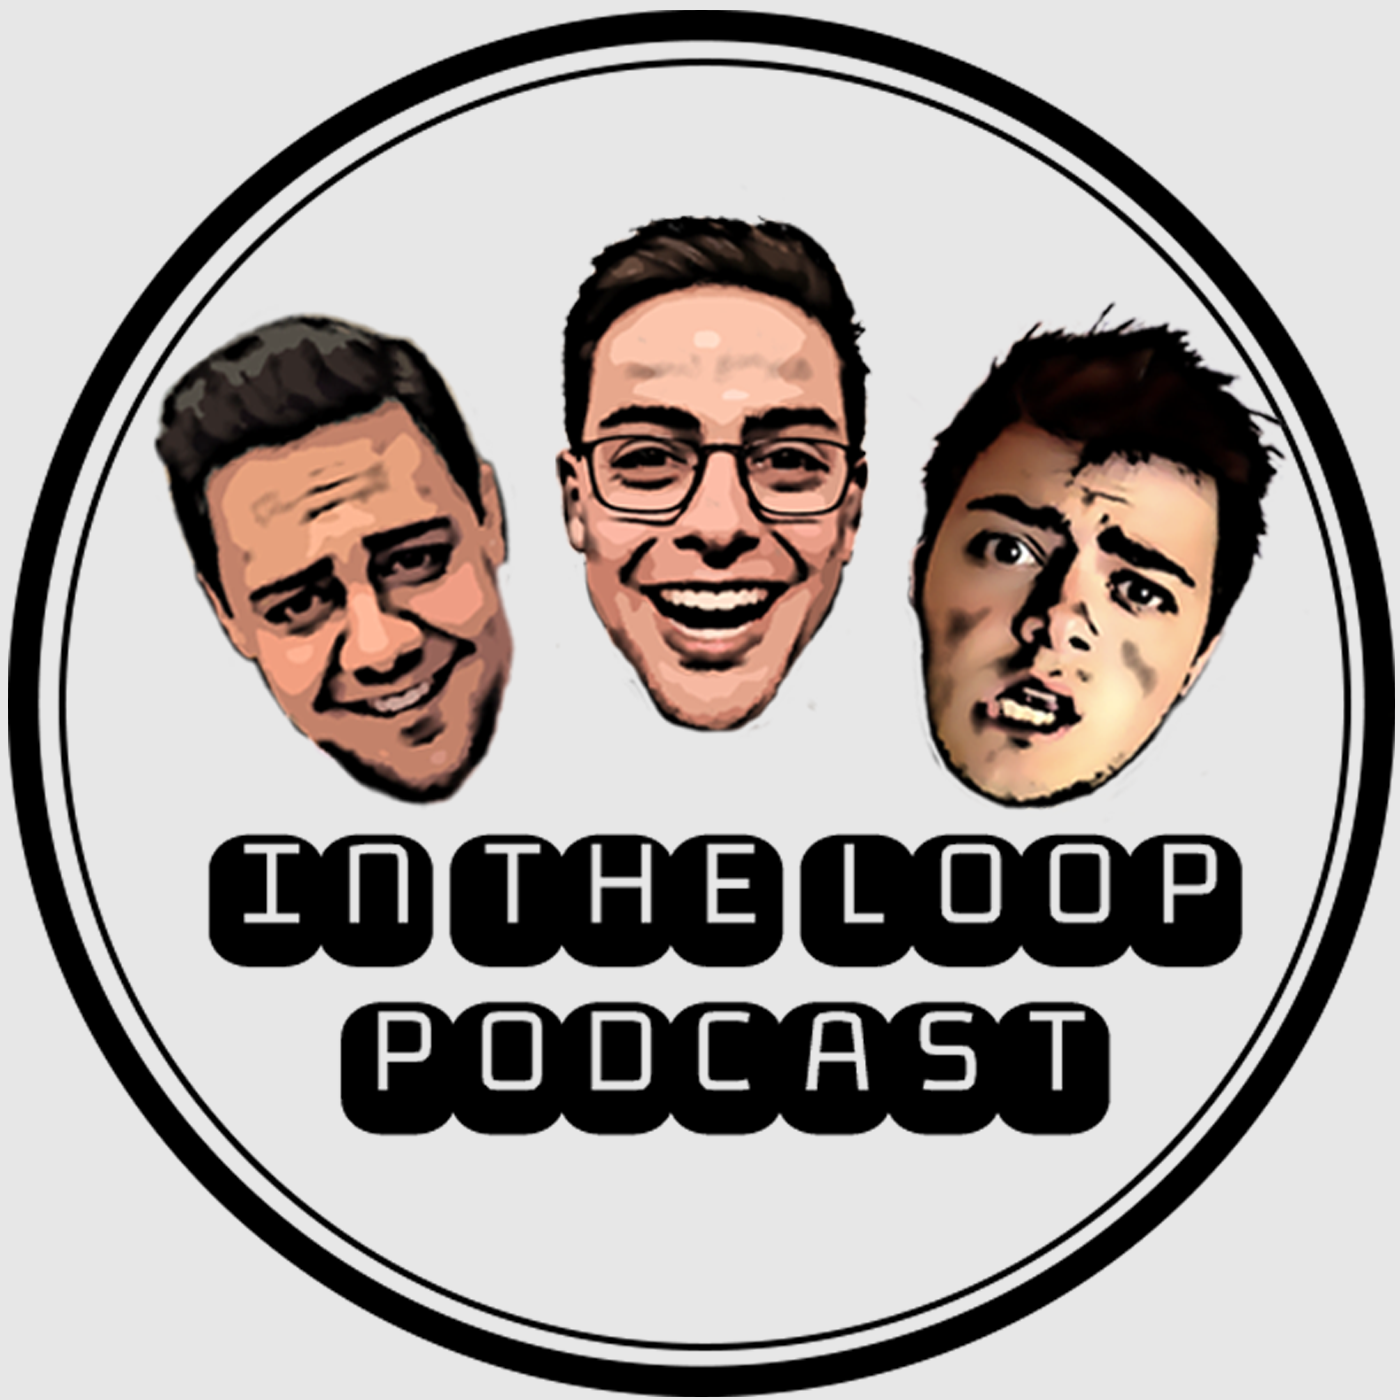 In The Loop Podcast